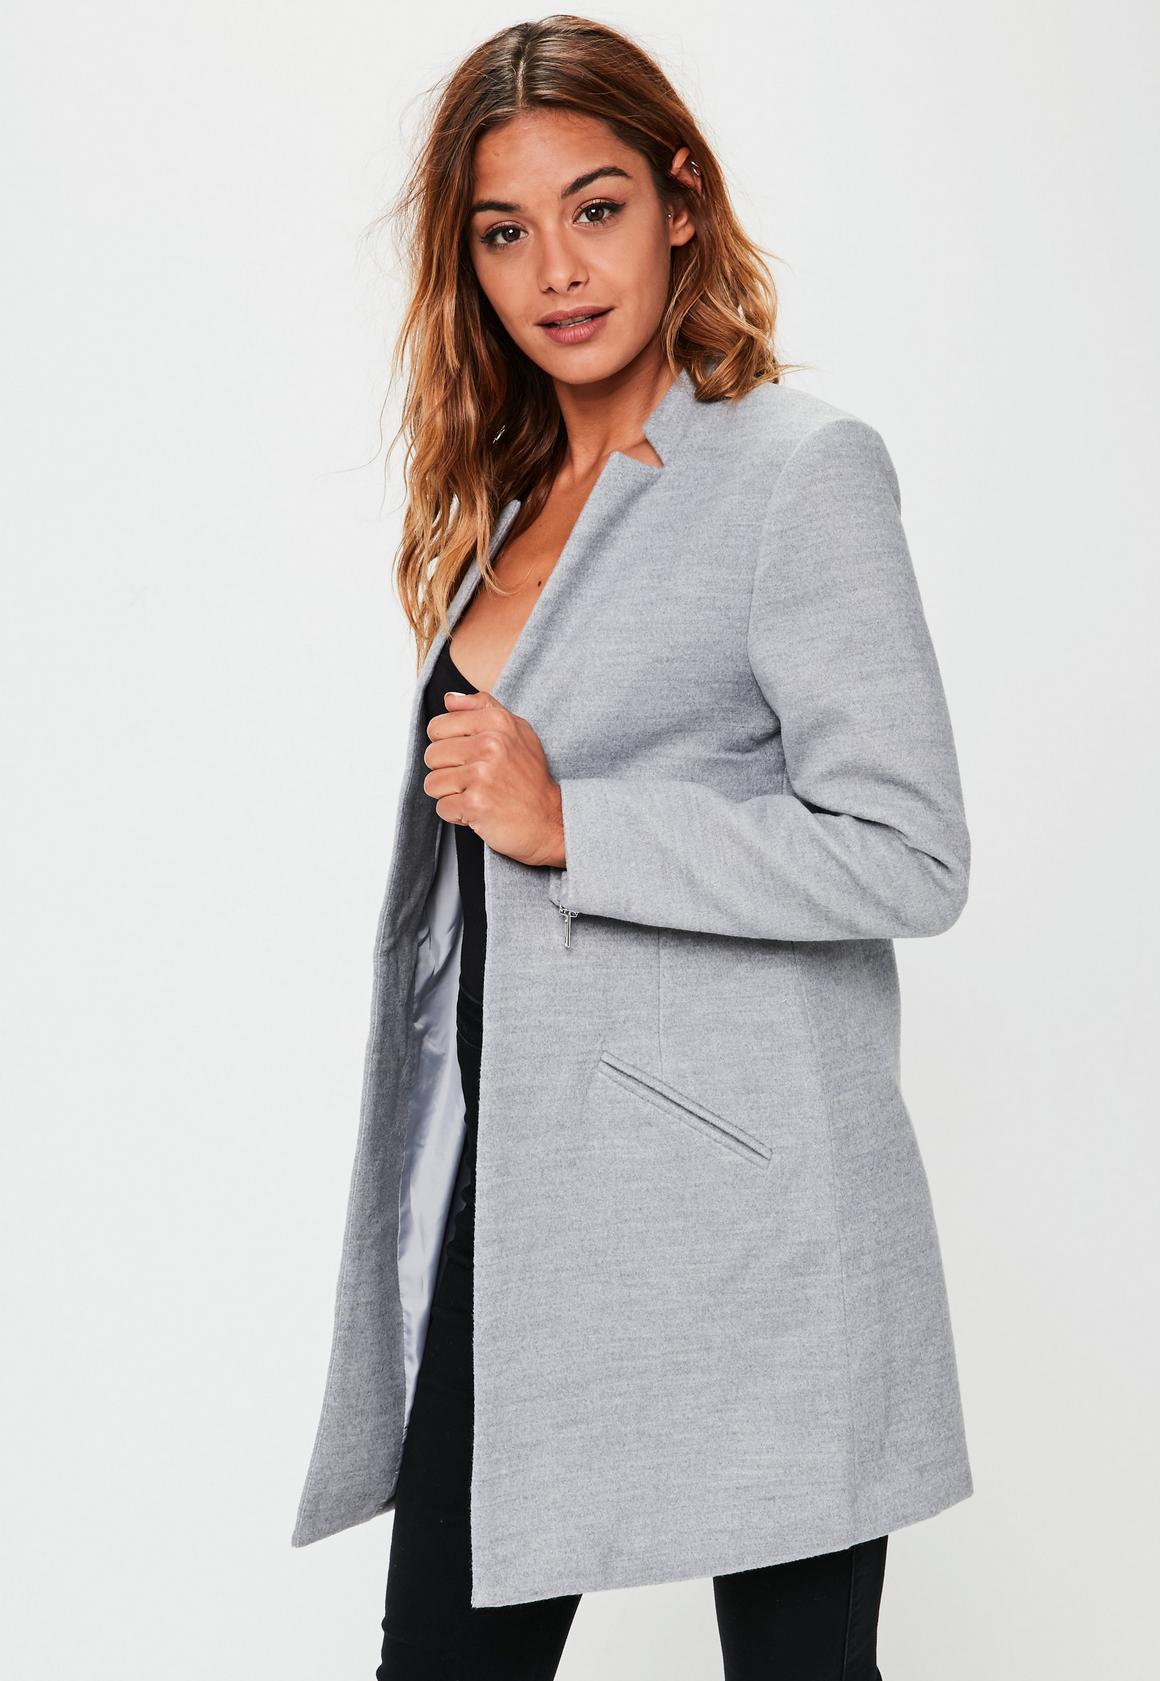 Grey Inverted Collar Short Formal Coat | Missguided Ireland